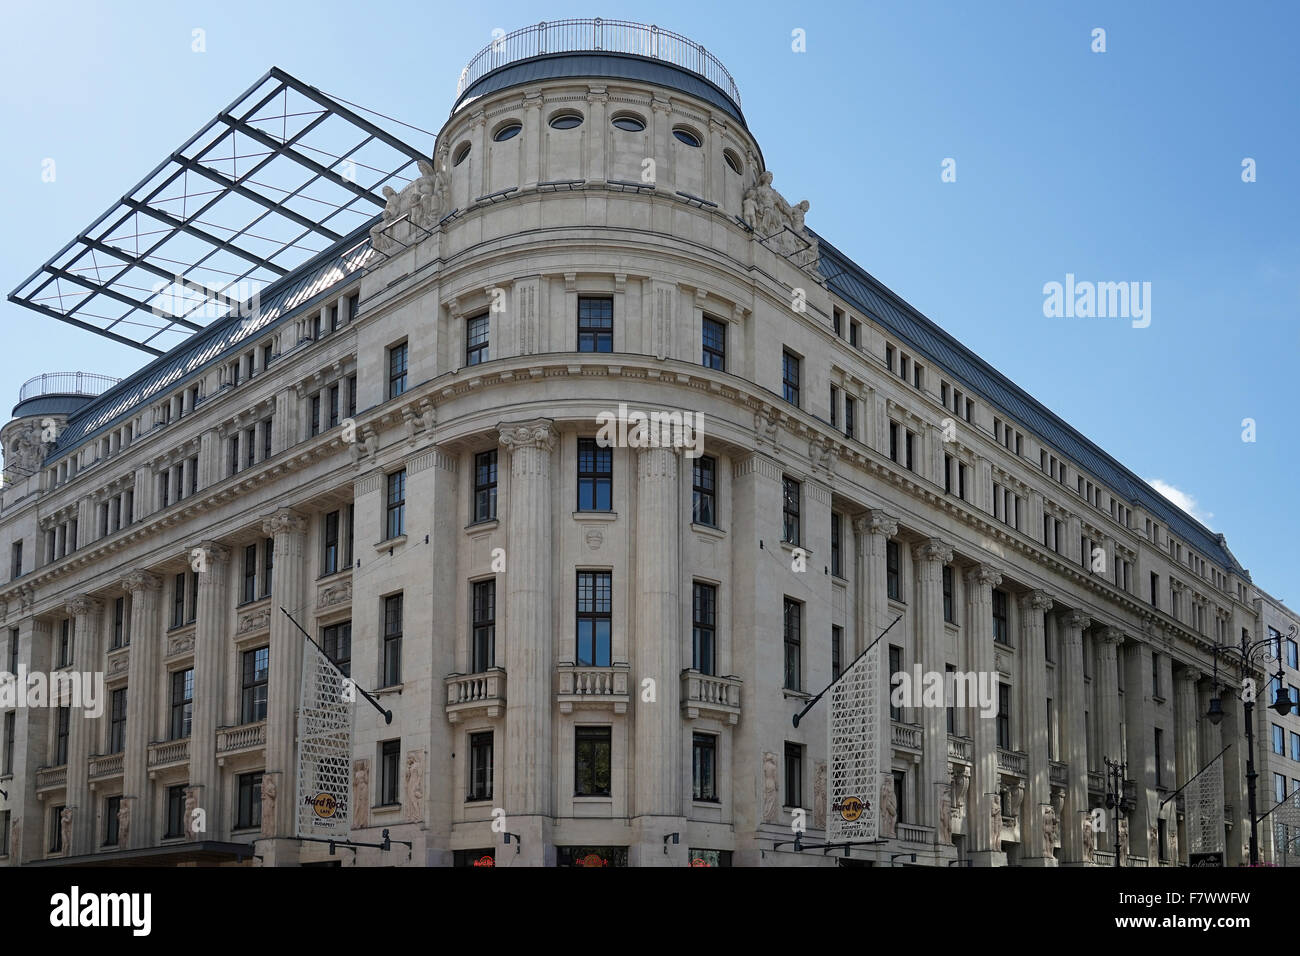 Hard Rock cafe building in Budapest - Stock Image